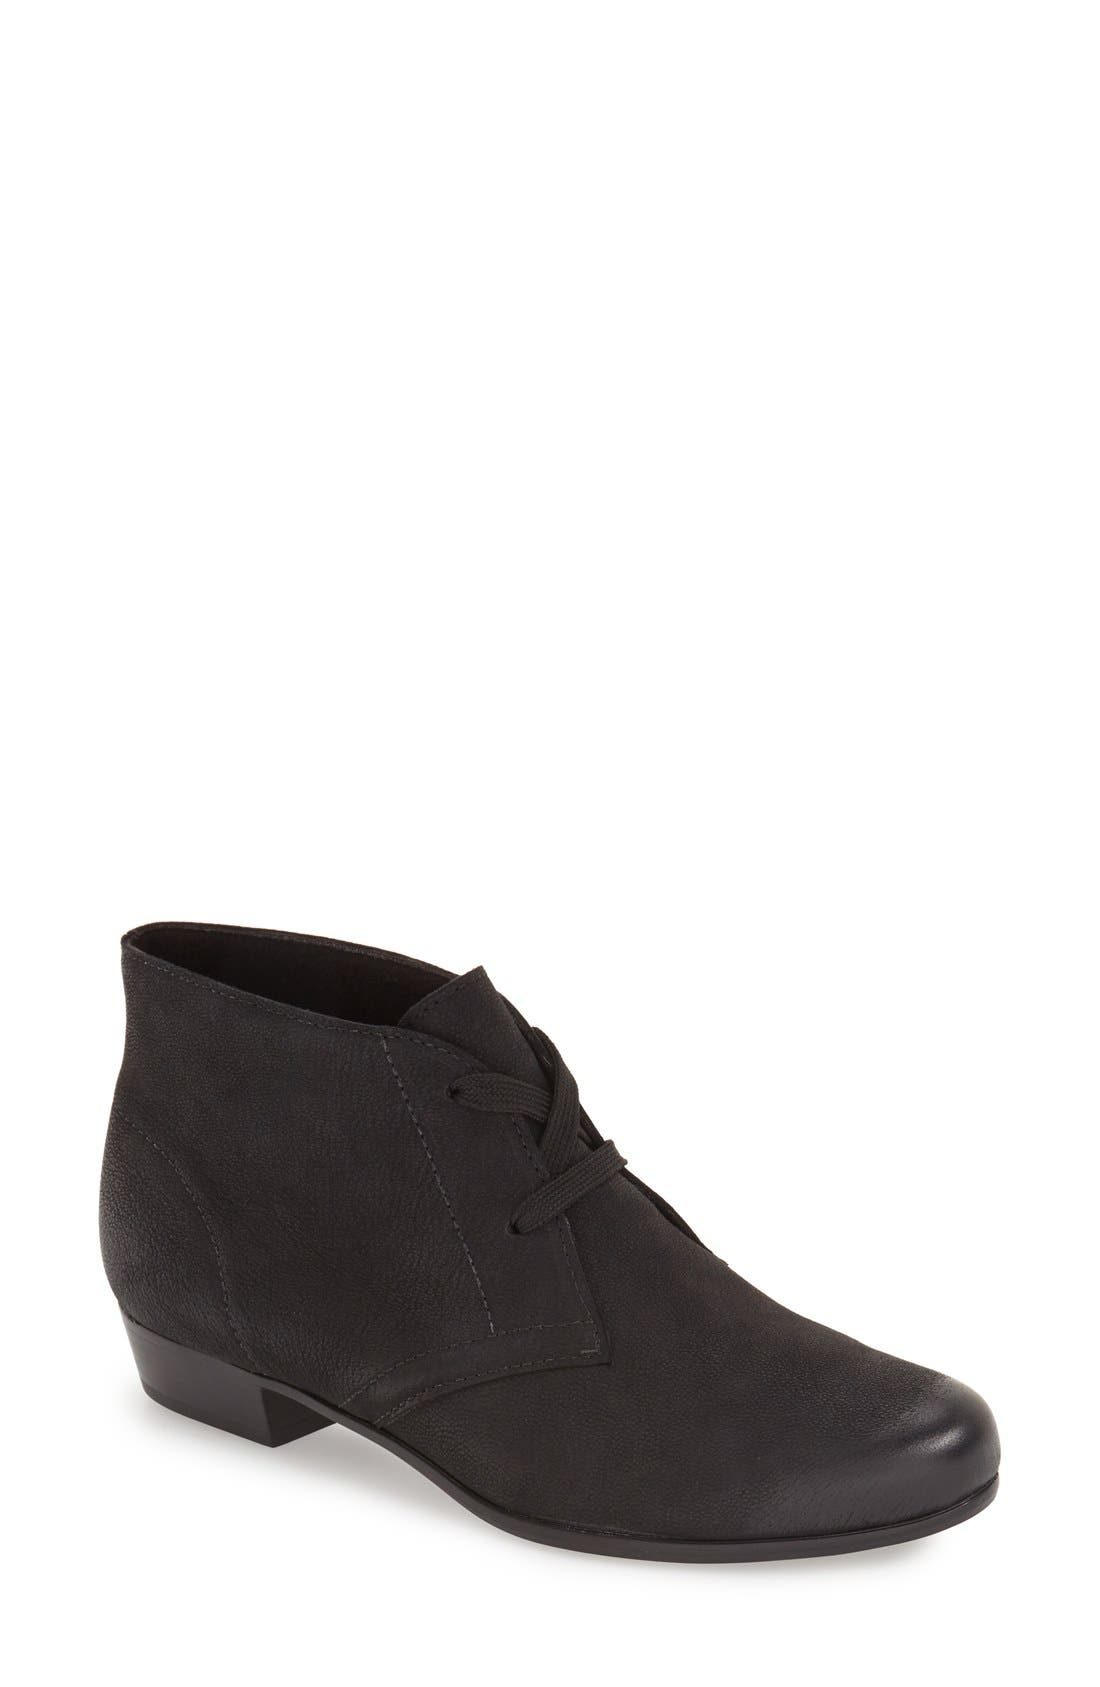 Munro 'Sloane' Lace Up Bootie (Women)